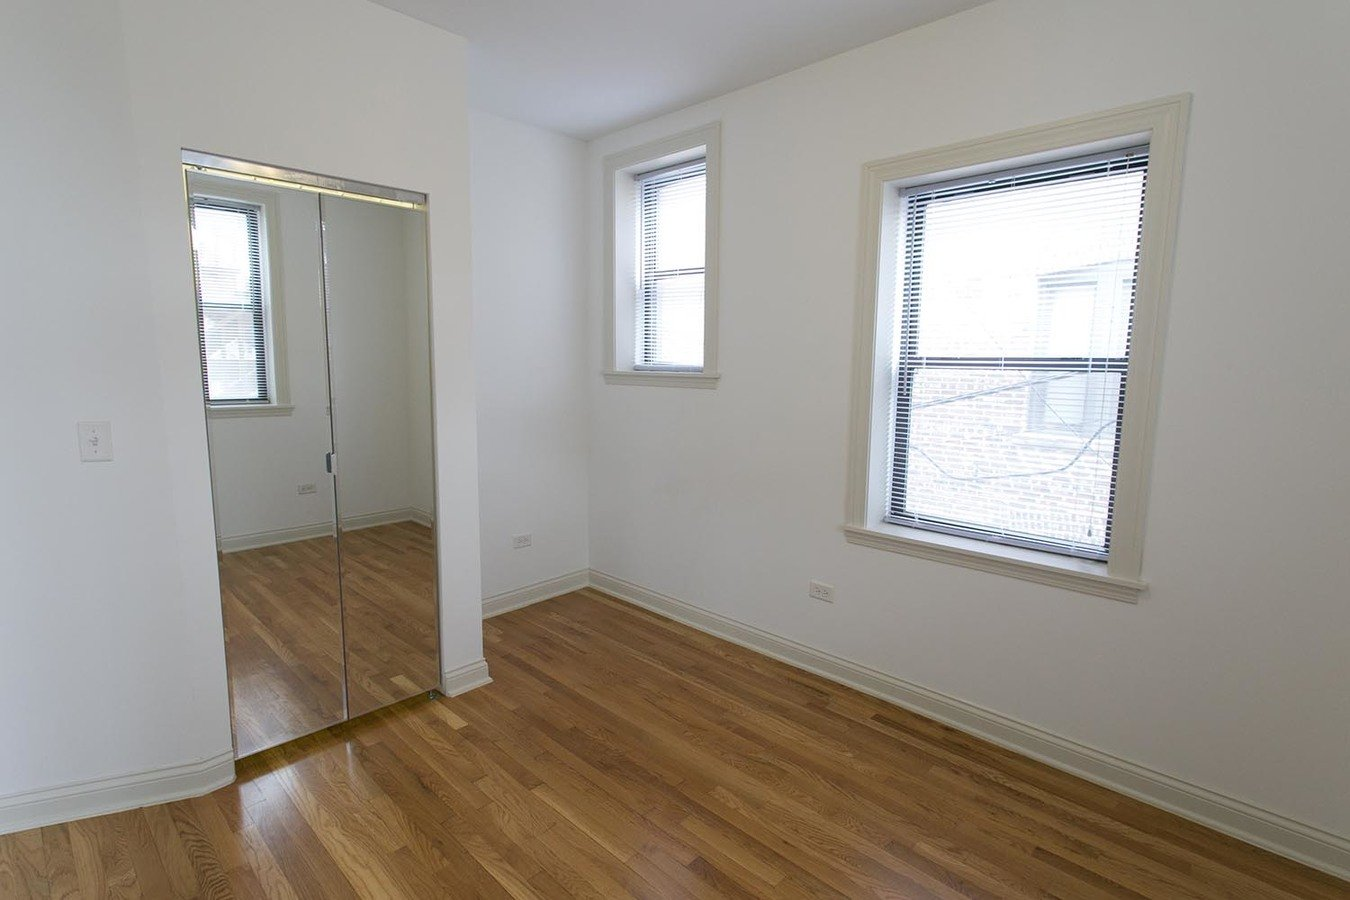 1 Bedroom 1 Bathroom Apartment for rent at 5401-5405 S. Drexel Boulevard in Chicago, IL